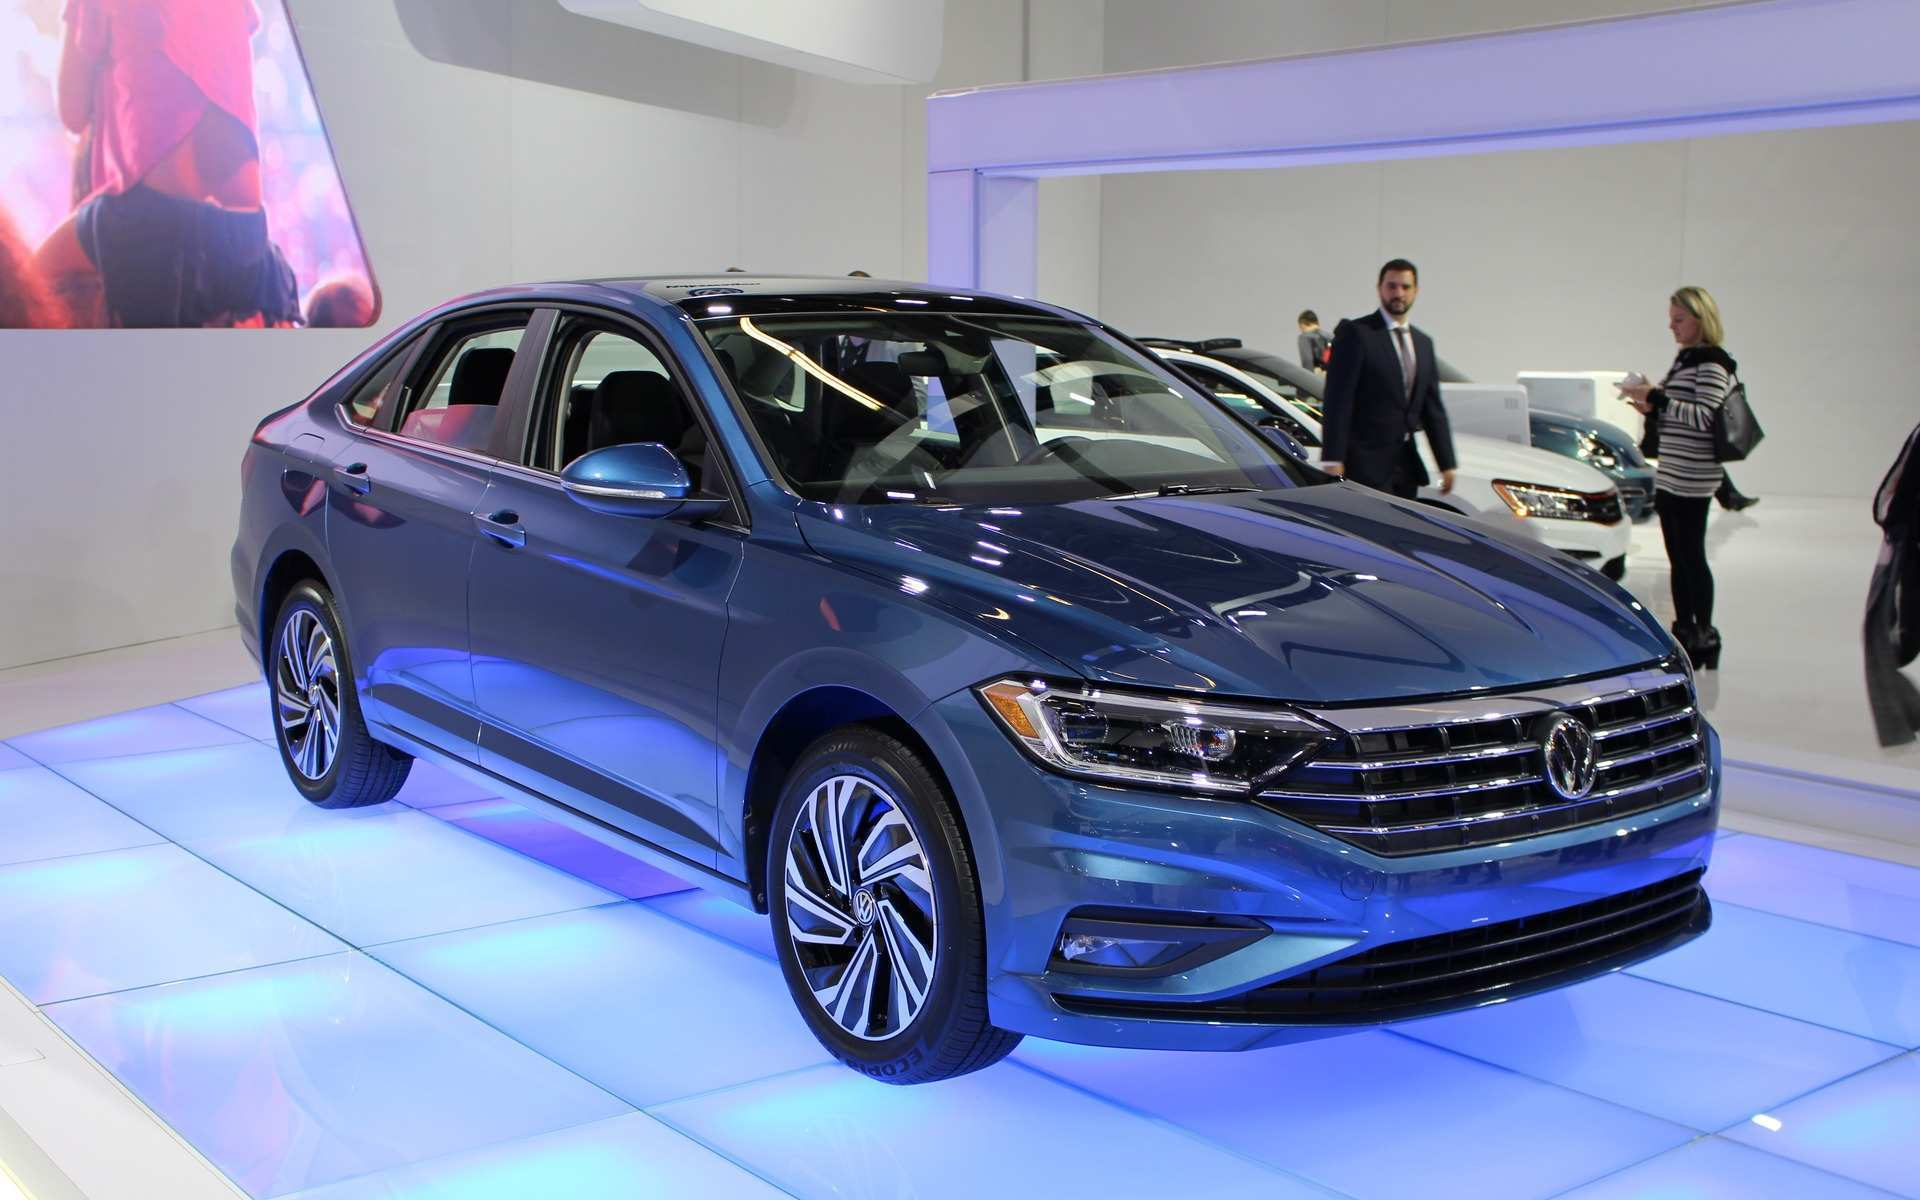 94 The Best Vw Jetta 2019 Canada Prices